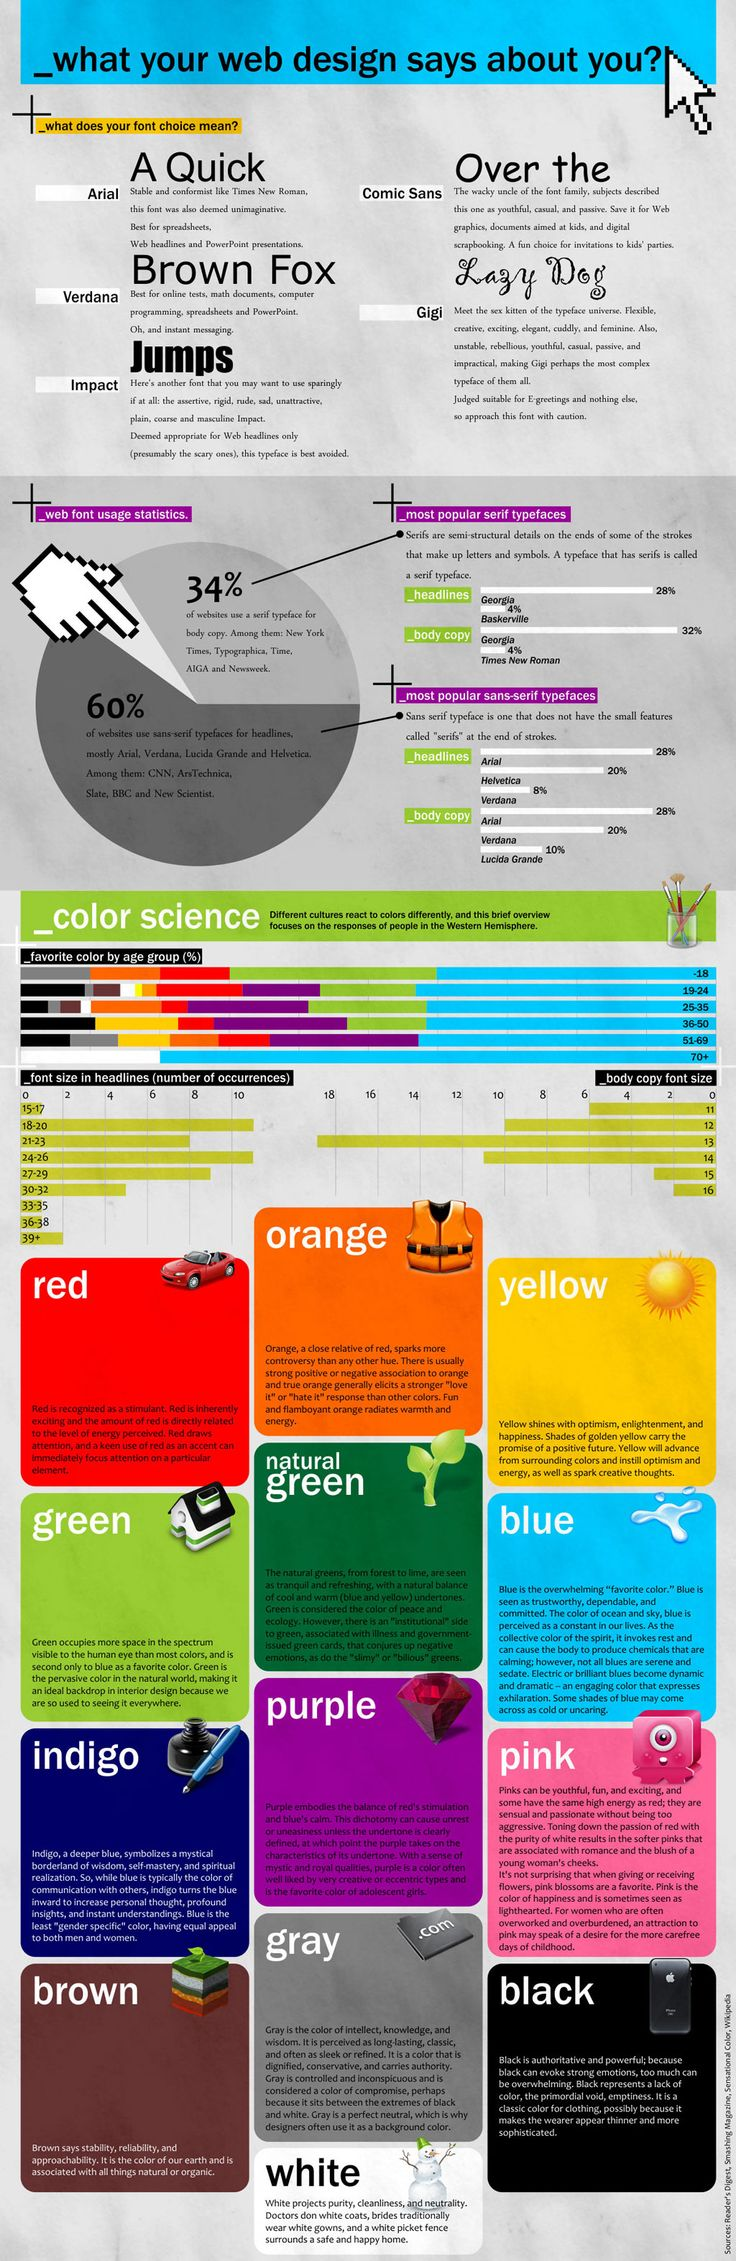 What Your Web Design Says About You #Infographic #infografía